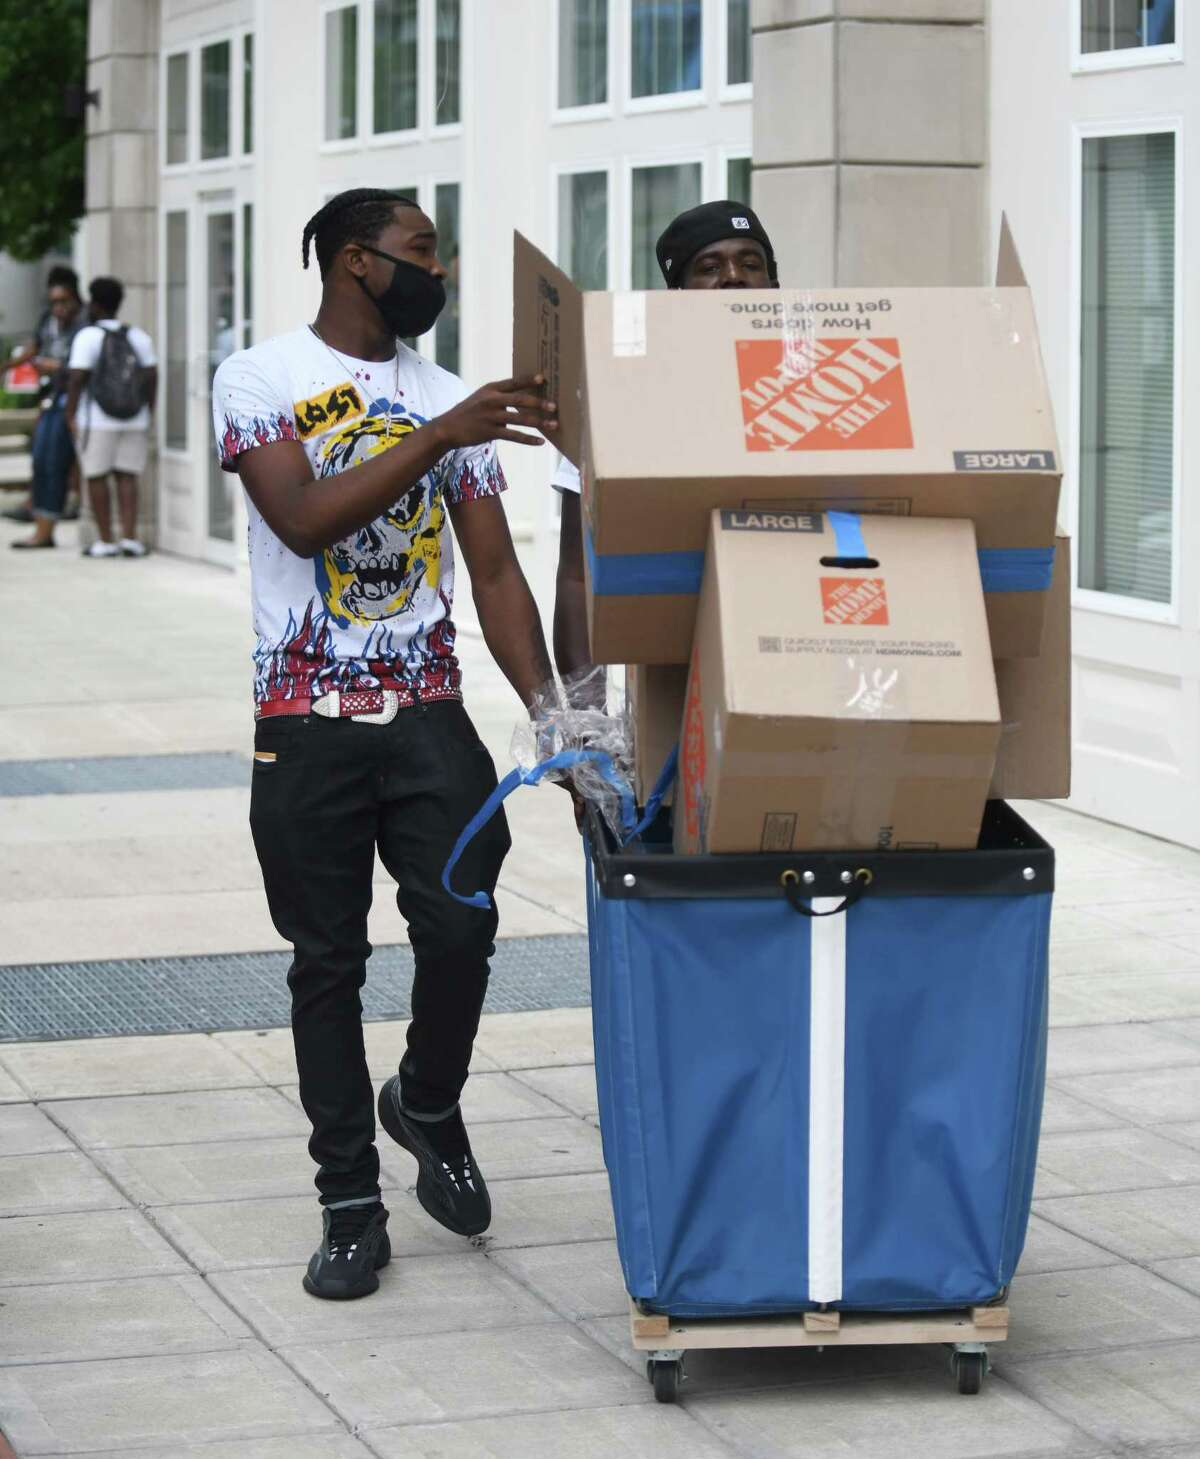 Incoming freshman Shakeemo Hill, left, gets help from his uncle, Niko South, moving boxes into the dorms at UConn Stamford campus in Stamford, Conn. Sunday, Aug. 29, 2021. Students returned to campus over the weekend before the start of the Fall 2021 semester.